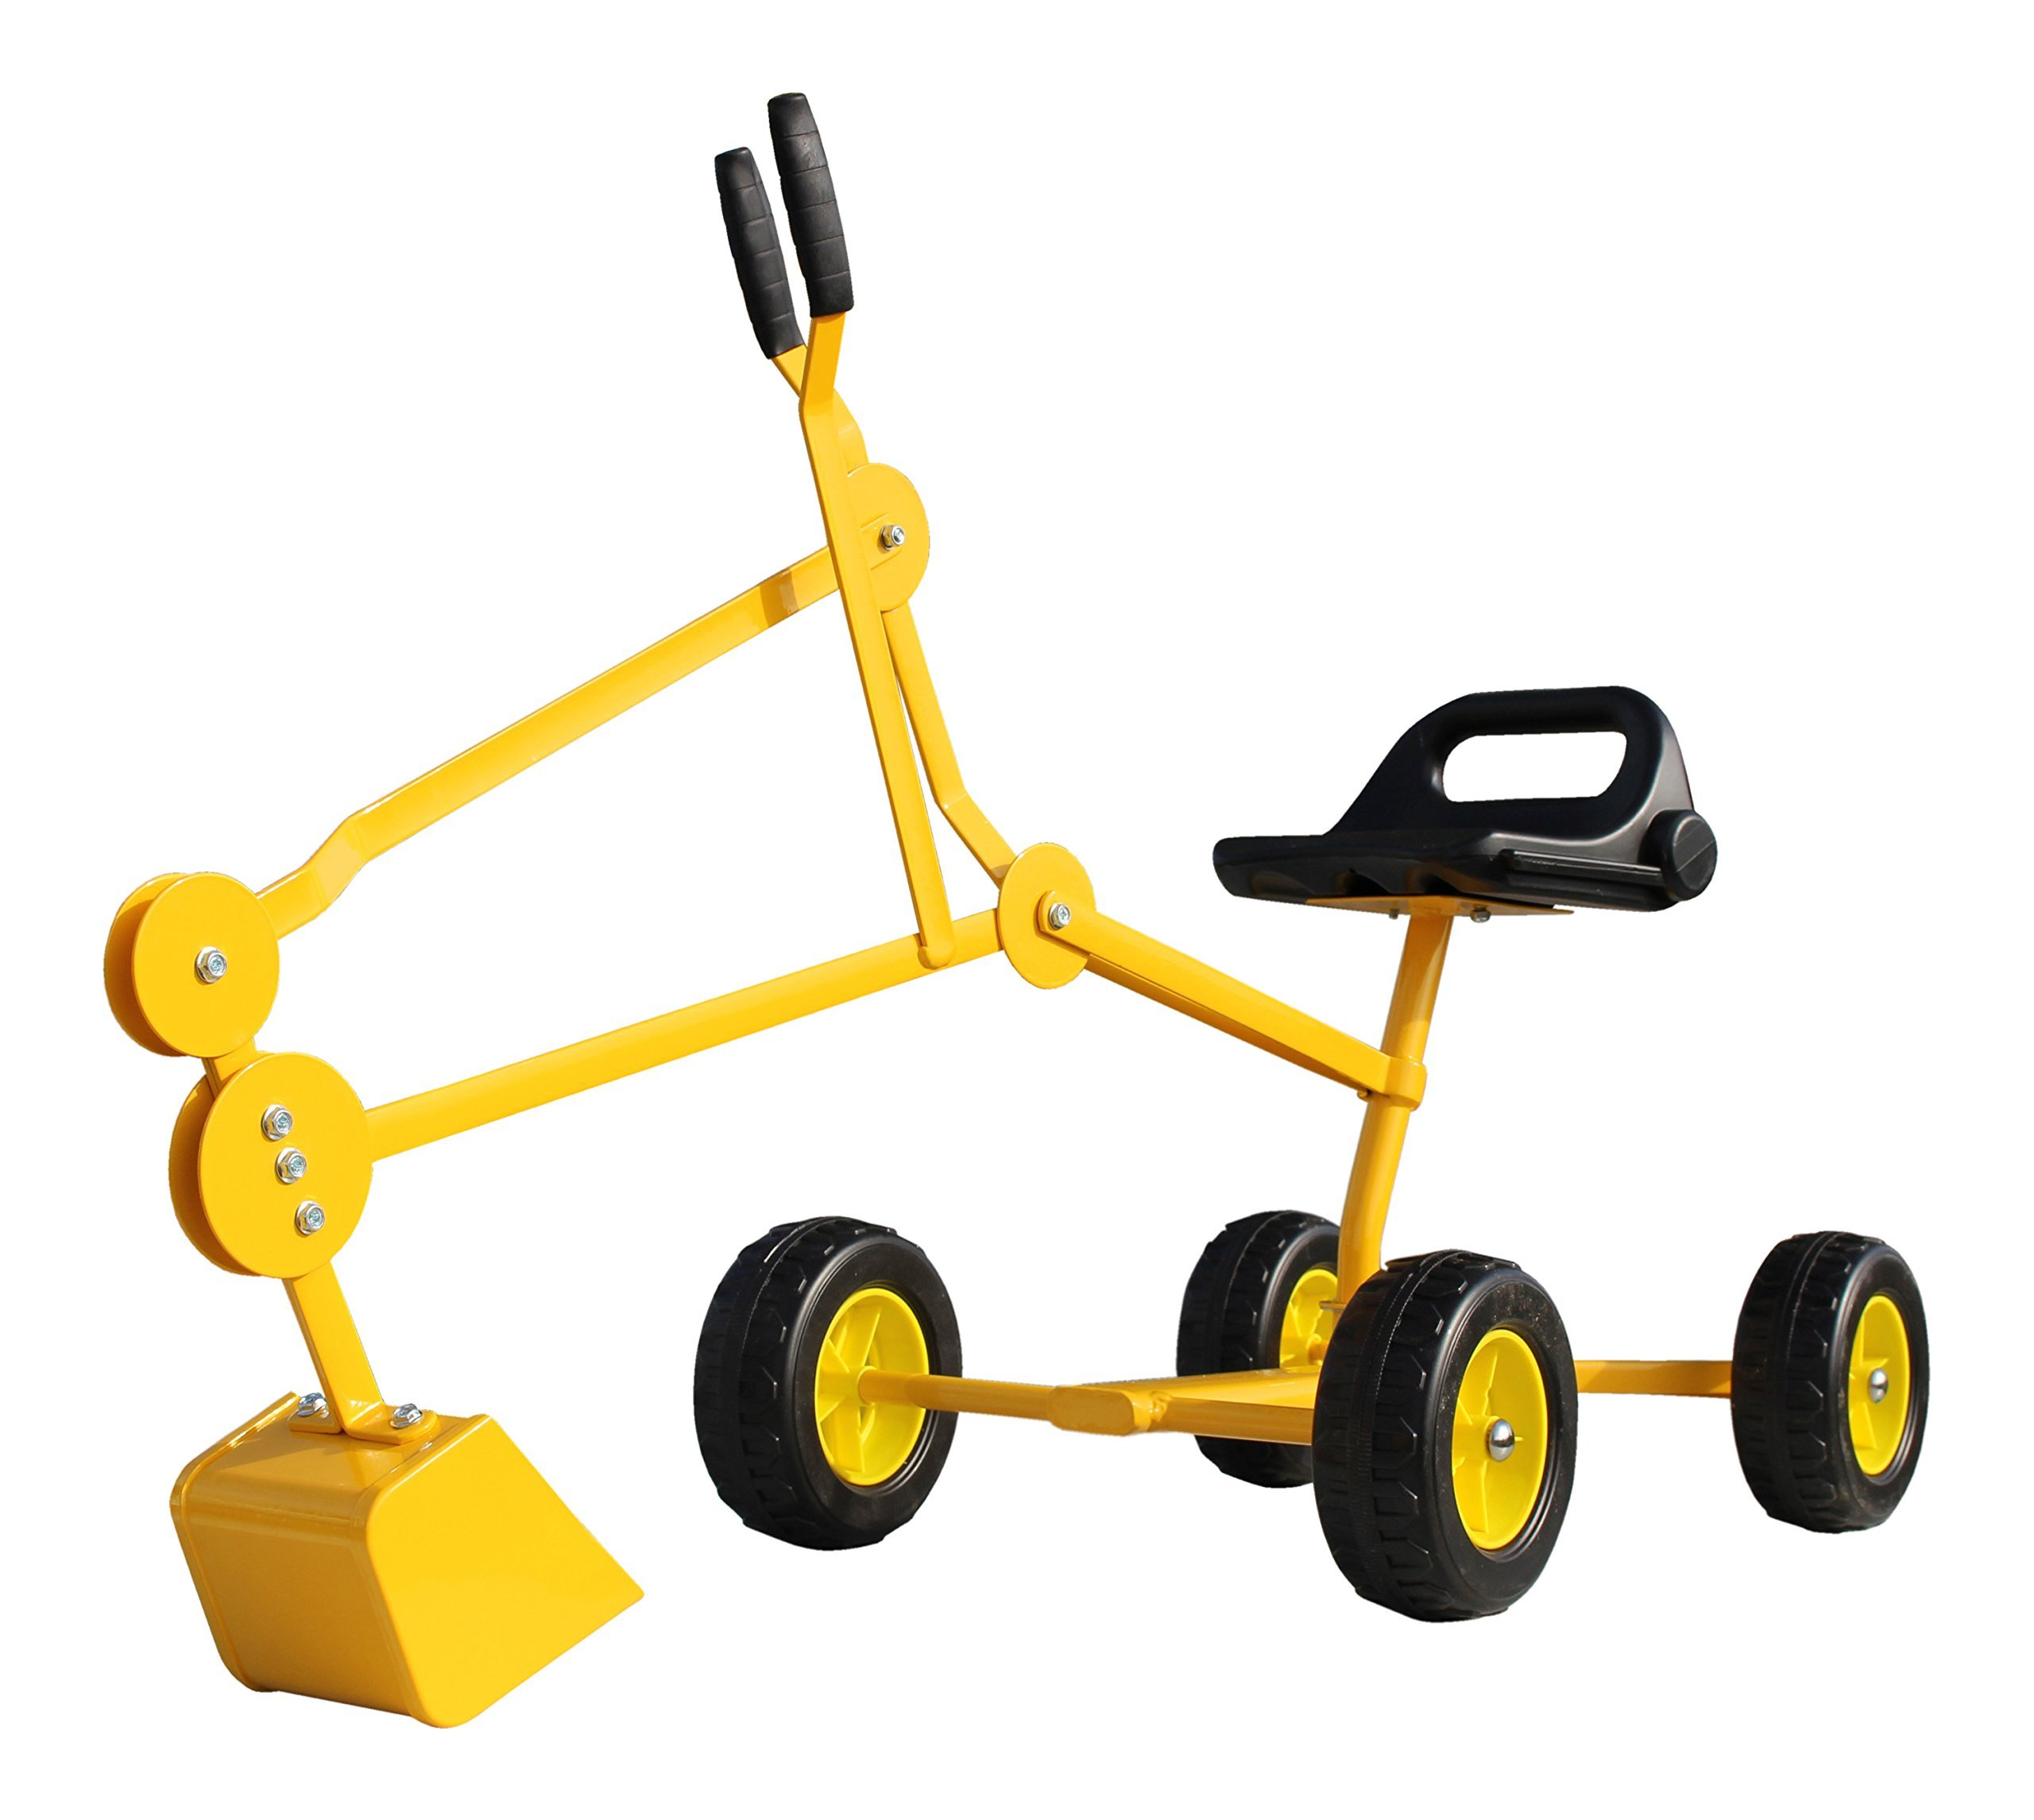 Childrensneeds.com Sand Digger Toy Backhoe with Wheels, A Toy Ride On Excavator for Ages 4-12 (Yellow) by Childrensneeds.com